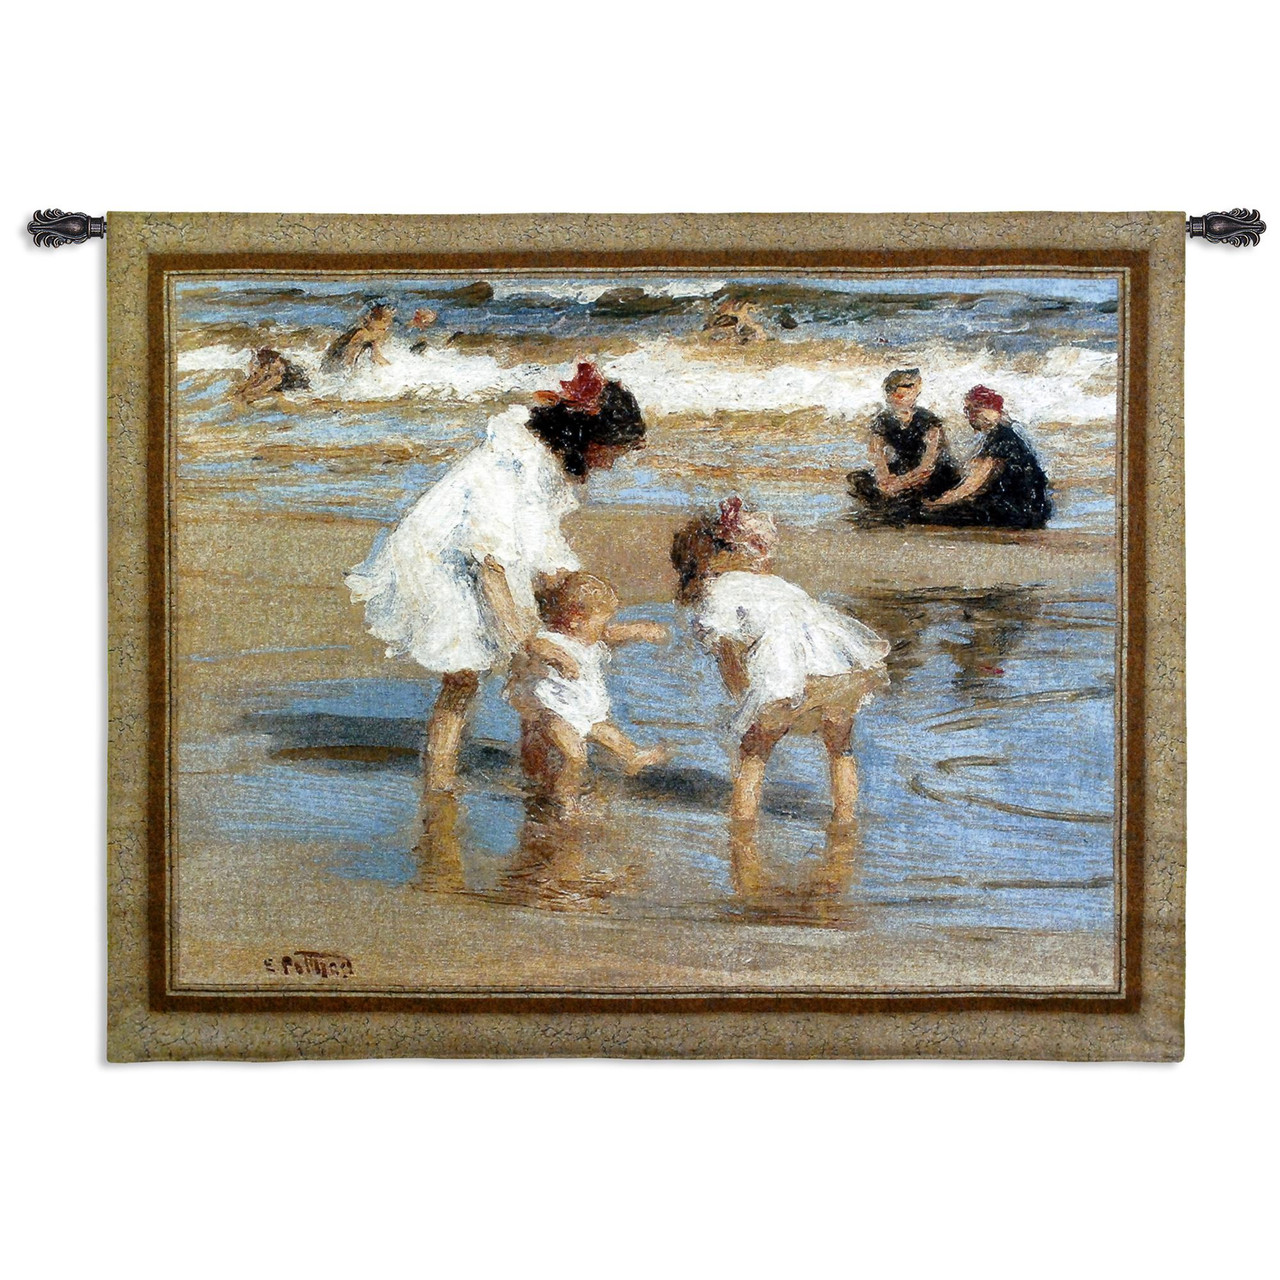 Playing At The Seashore Woven Tapestry Wall Art Hanging Abstract Nostalgic Family At The Beach 100 Cotton Usa Size 53x42